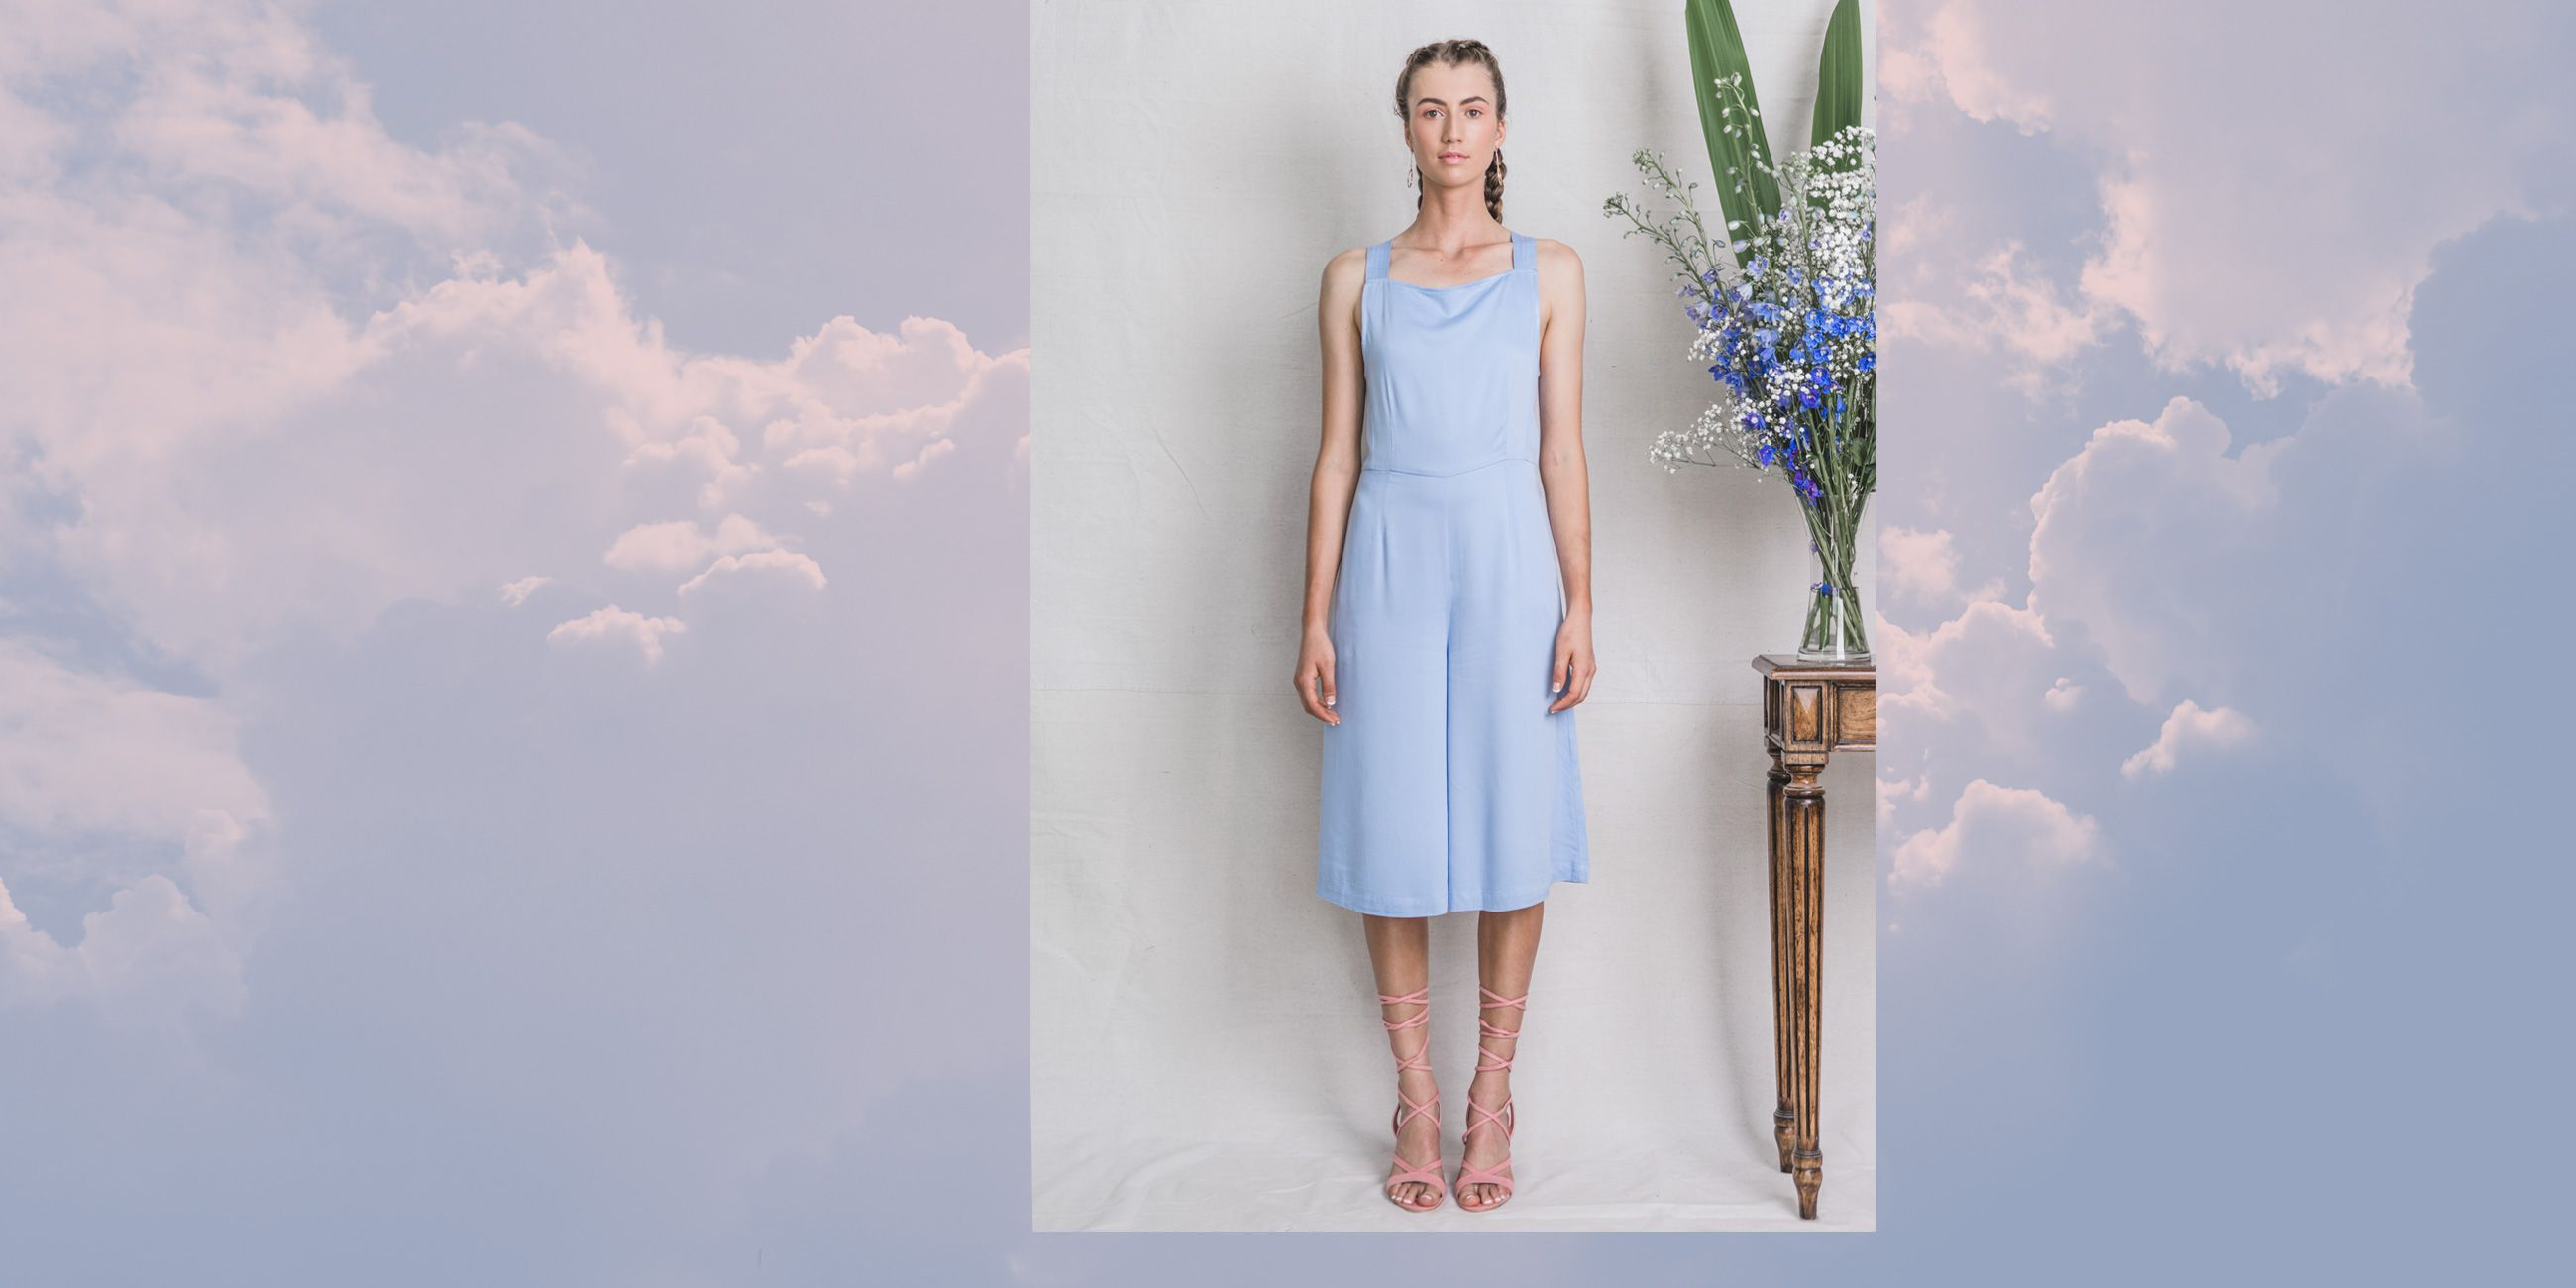 Lyra Bamboo Playsuit in Serenity Blue – The Great Beyond 3